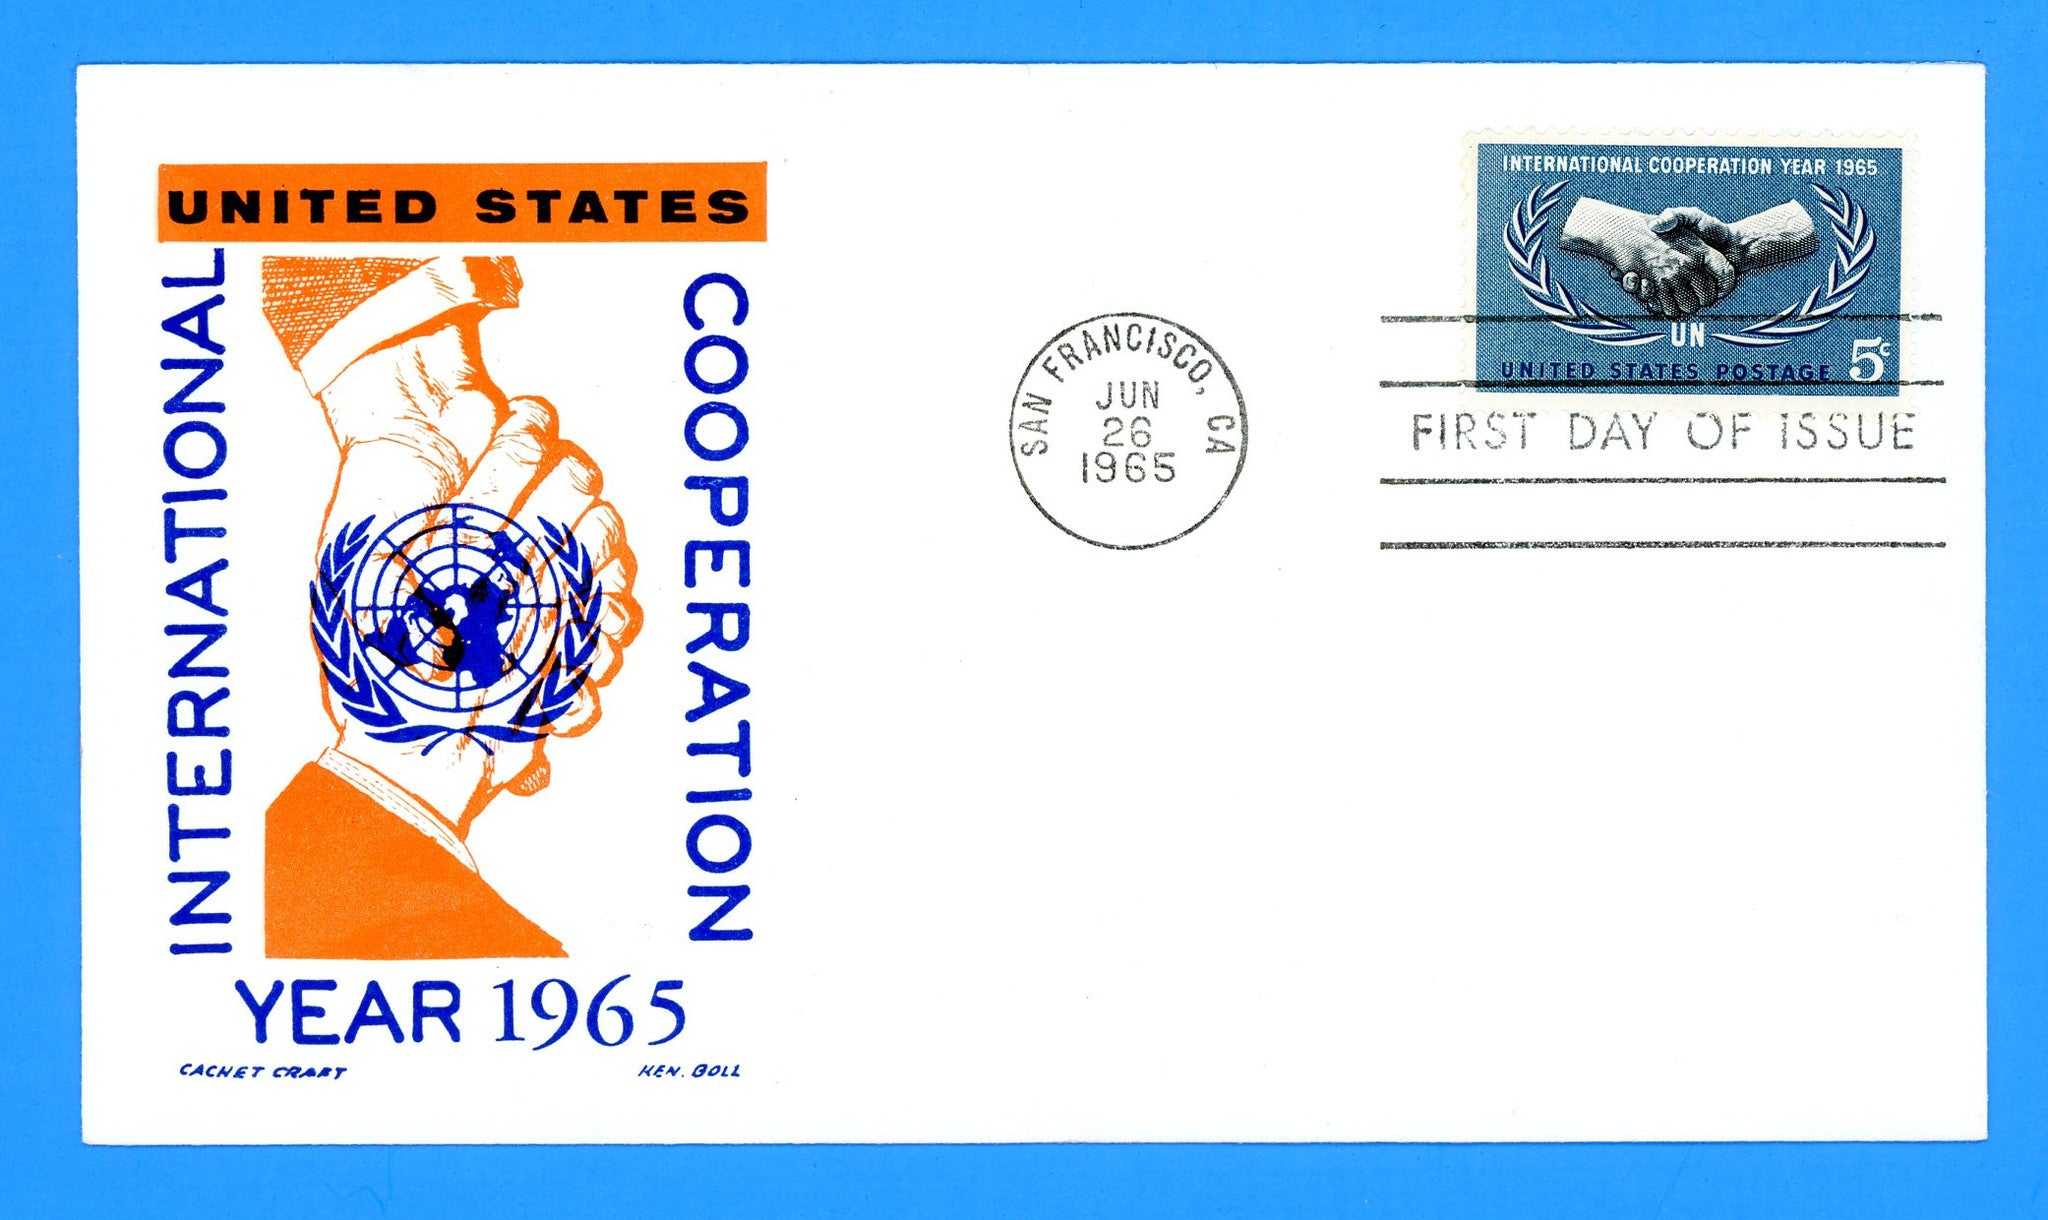 Scott 1266 International Cooperation Year First Day Cover by Cachet Craft/Boll